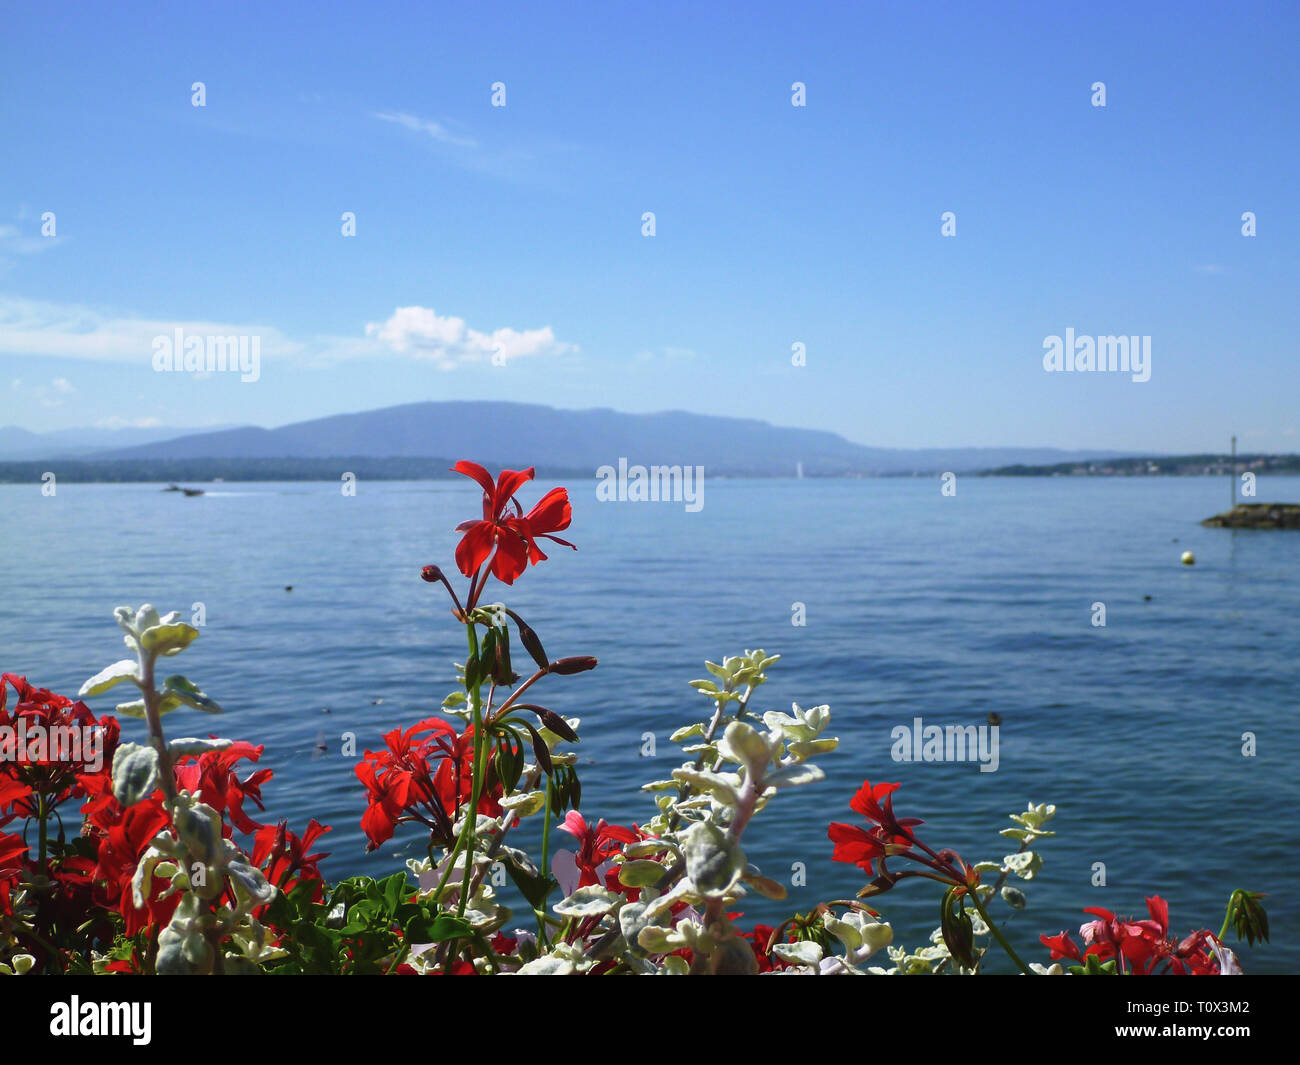 Geraniums on the shore of Lake Leman - Alps mountains in background - Stock Image